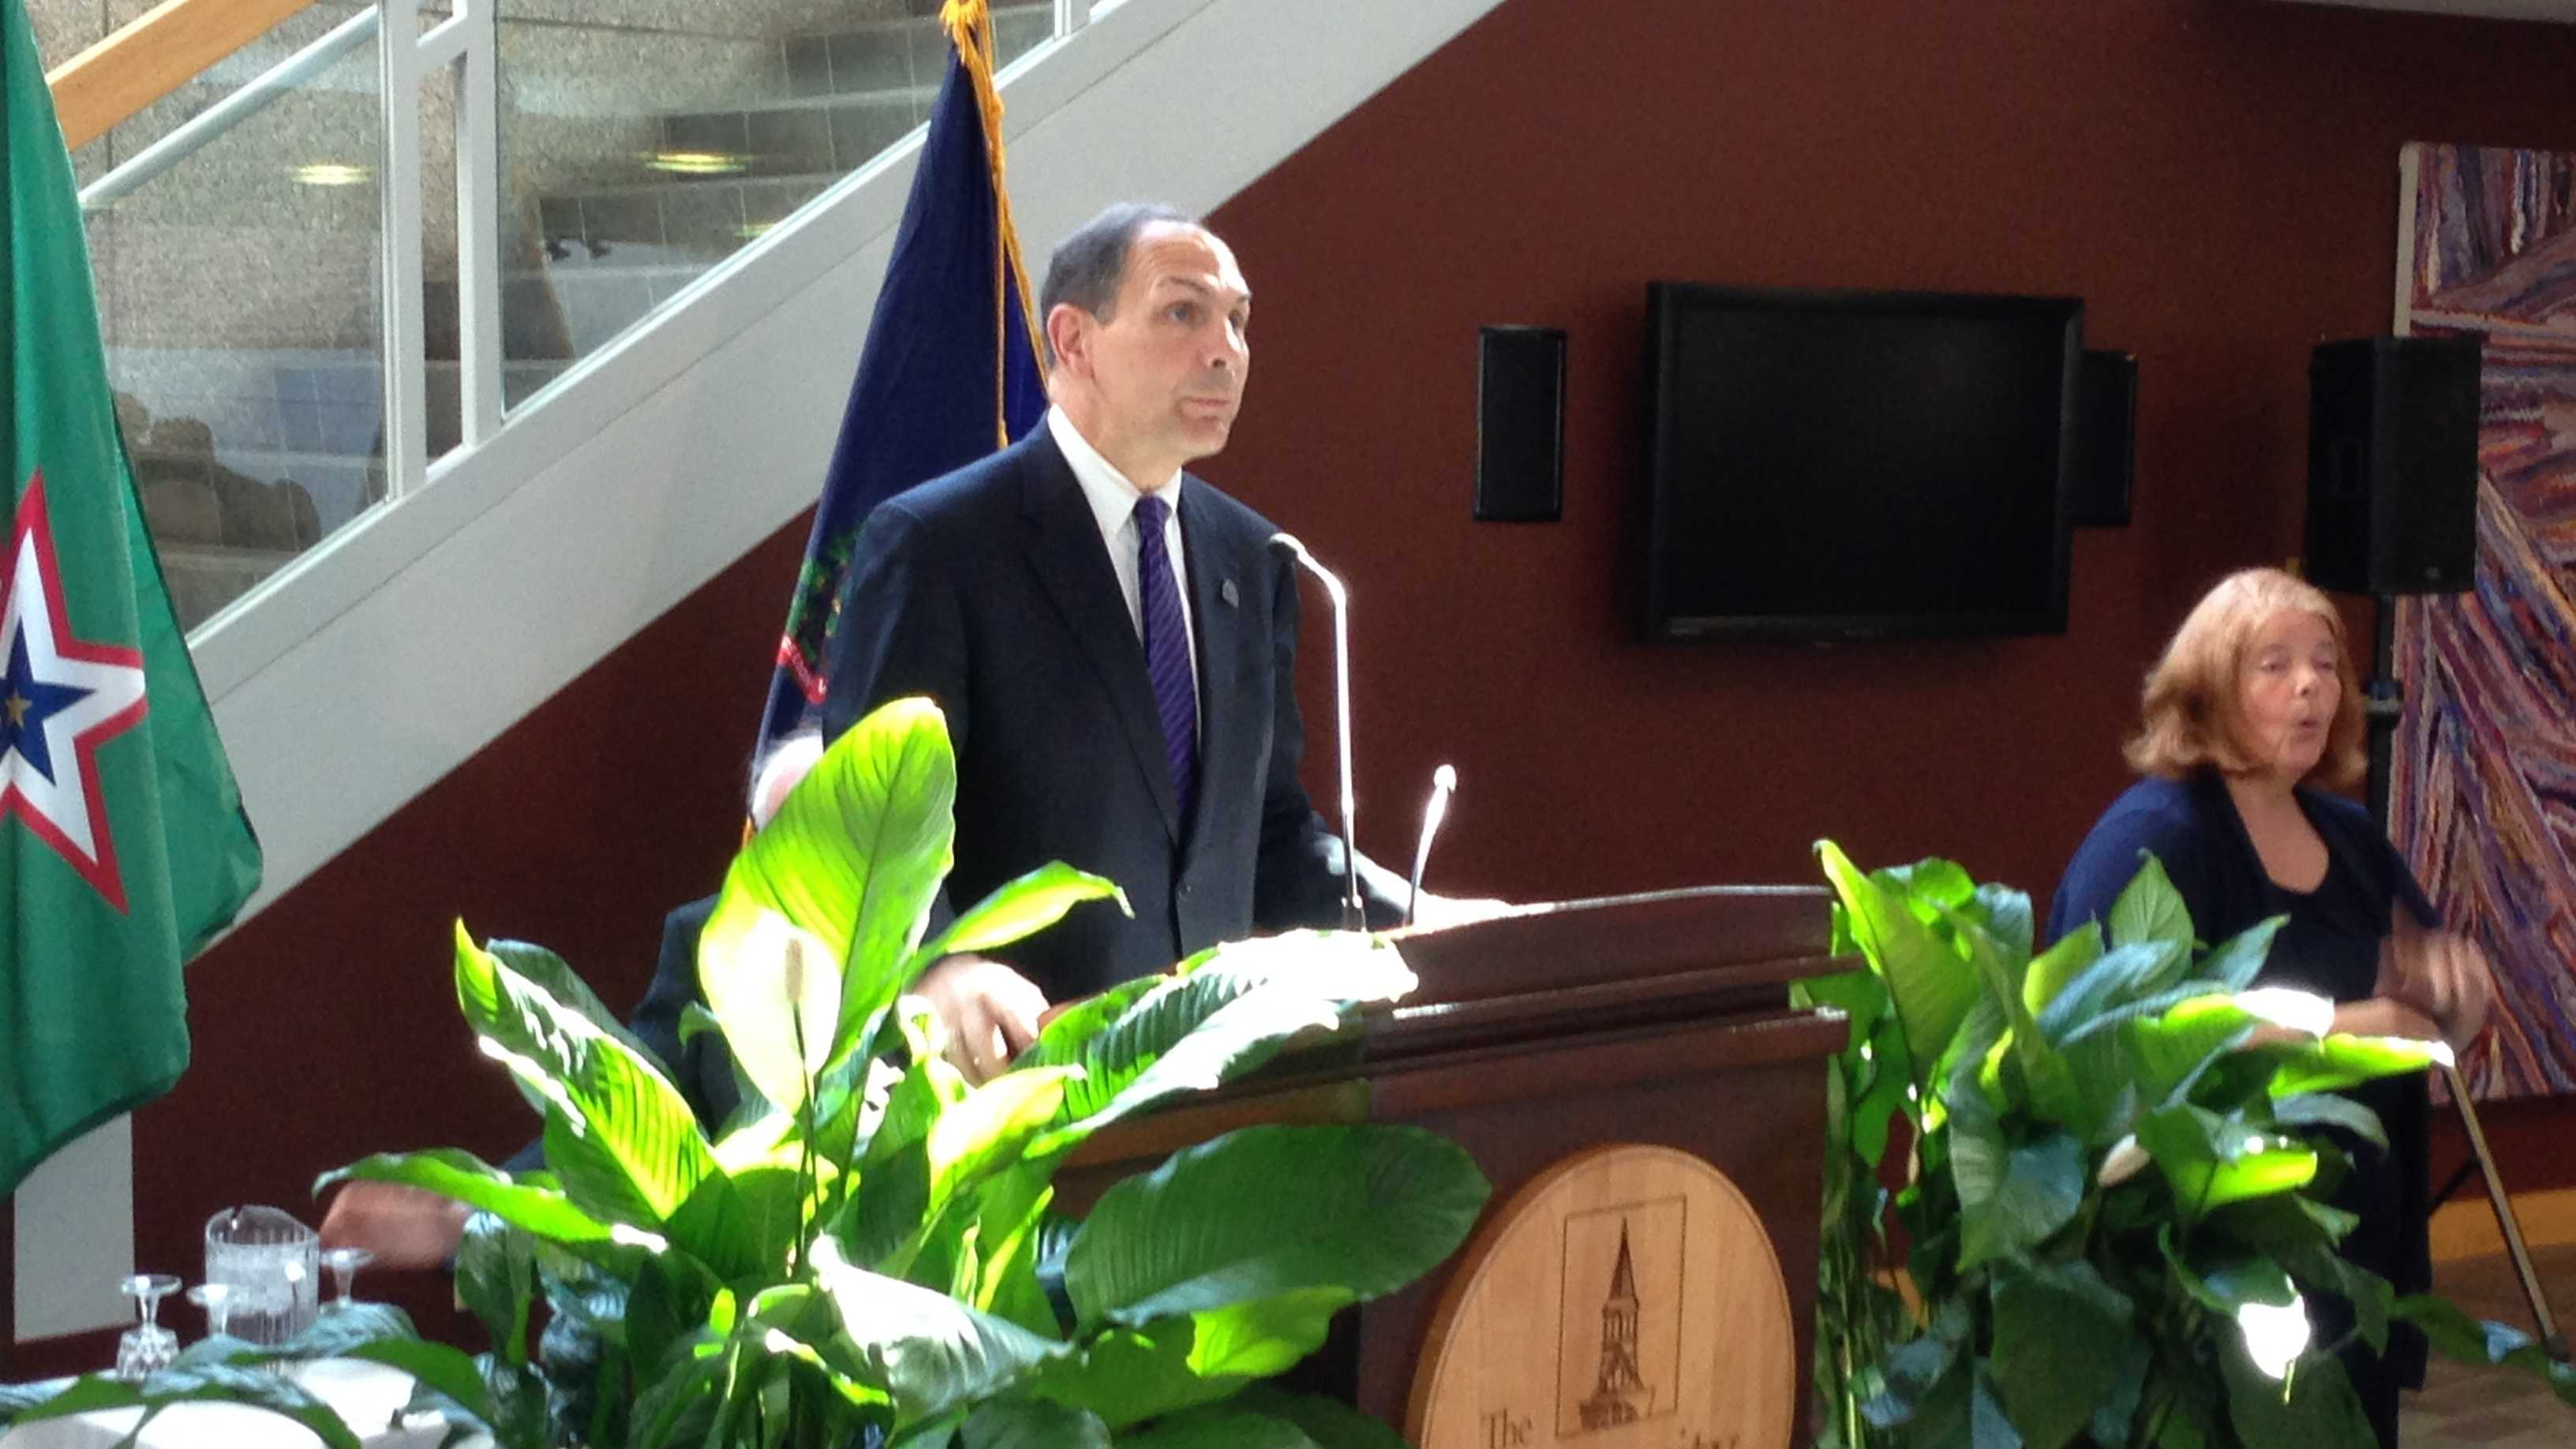 Robert McDonald, Secretary of Veterans Affairs, makes a recruitment pitch at the University of Vermont.